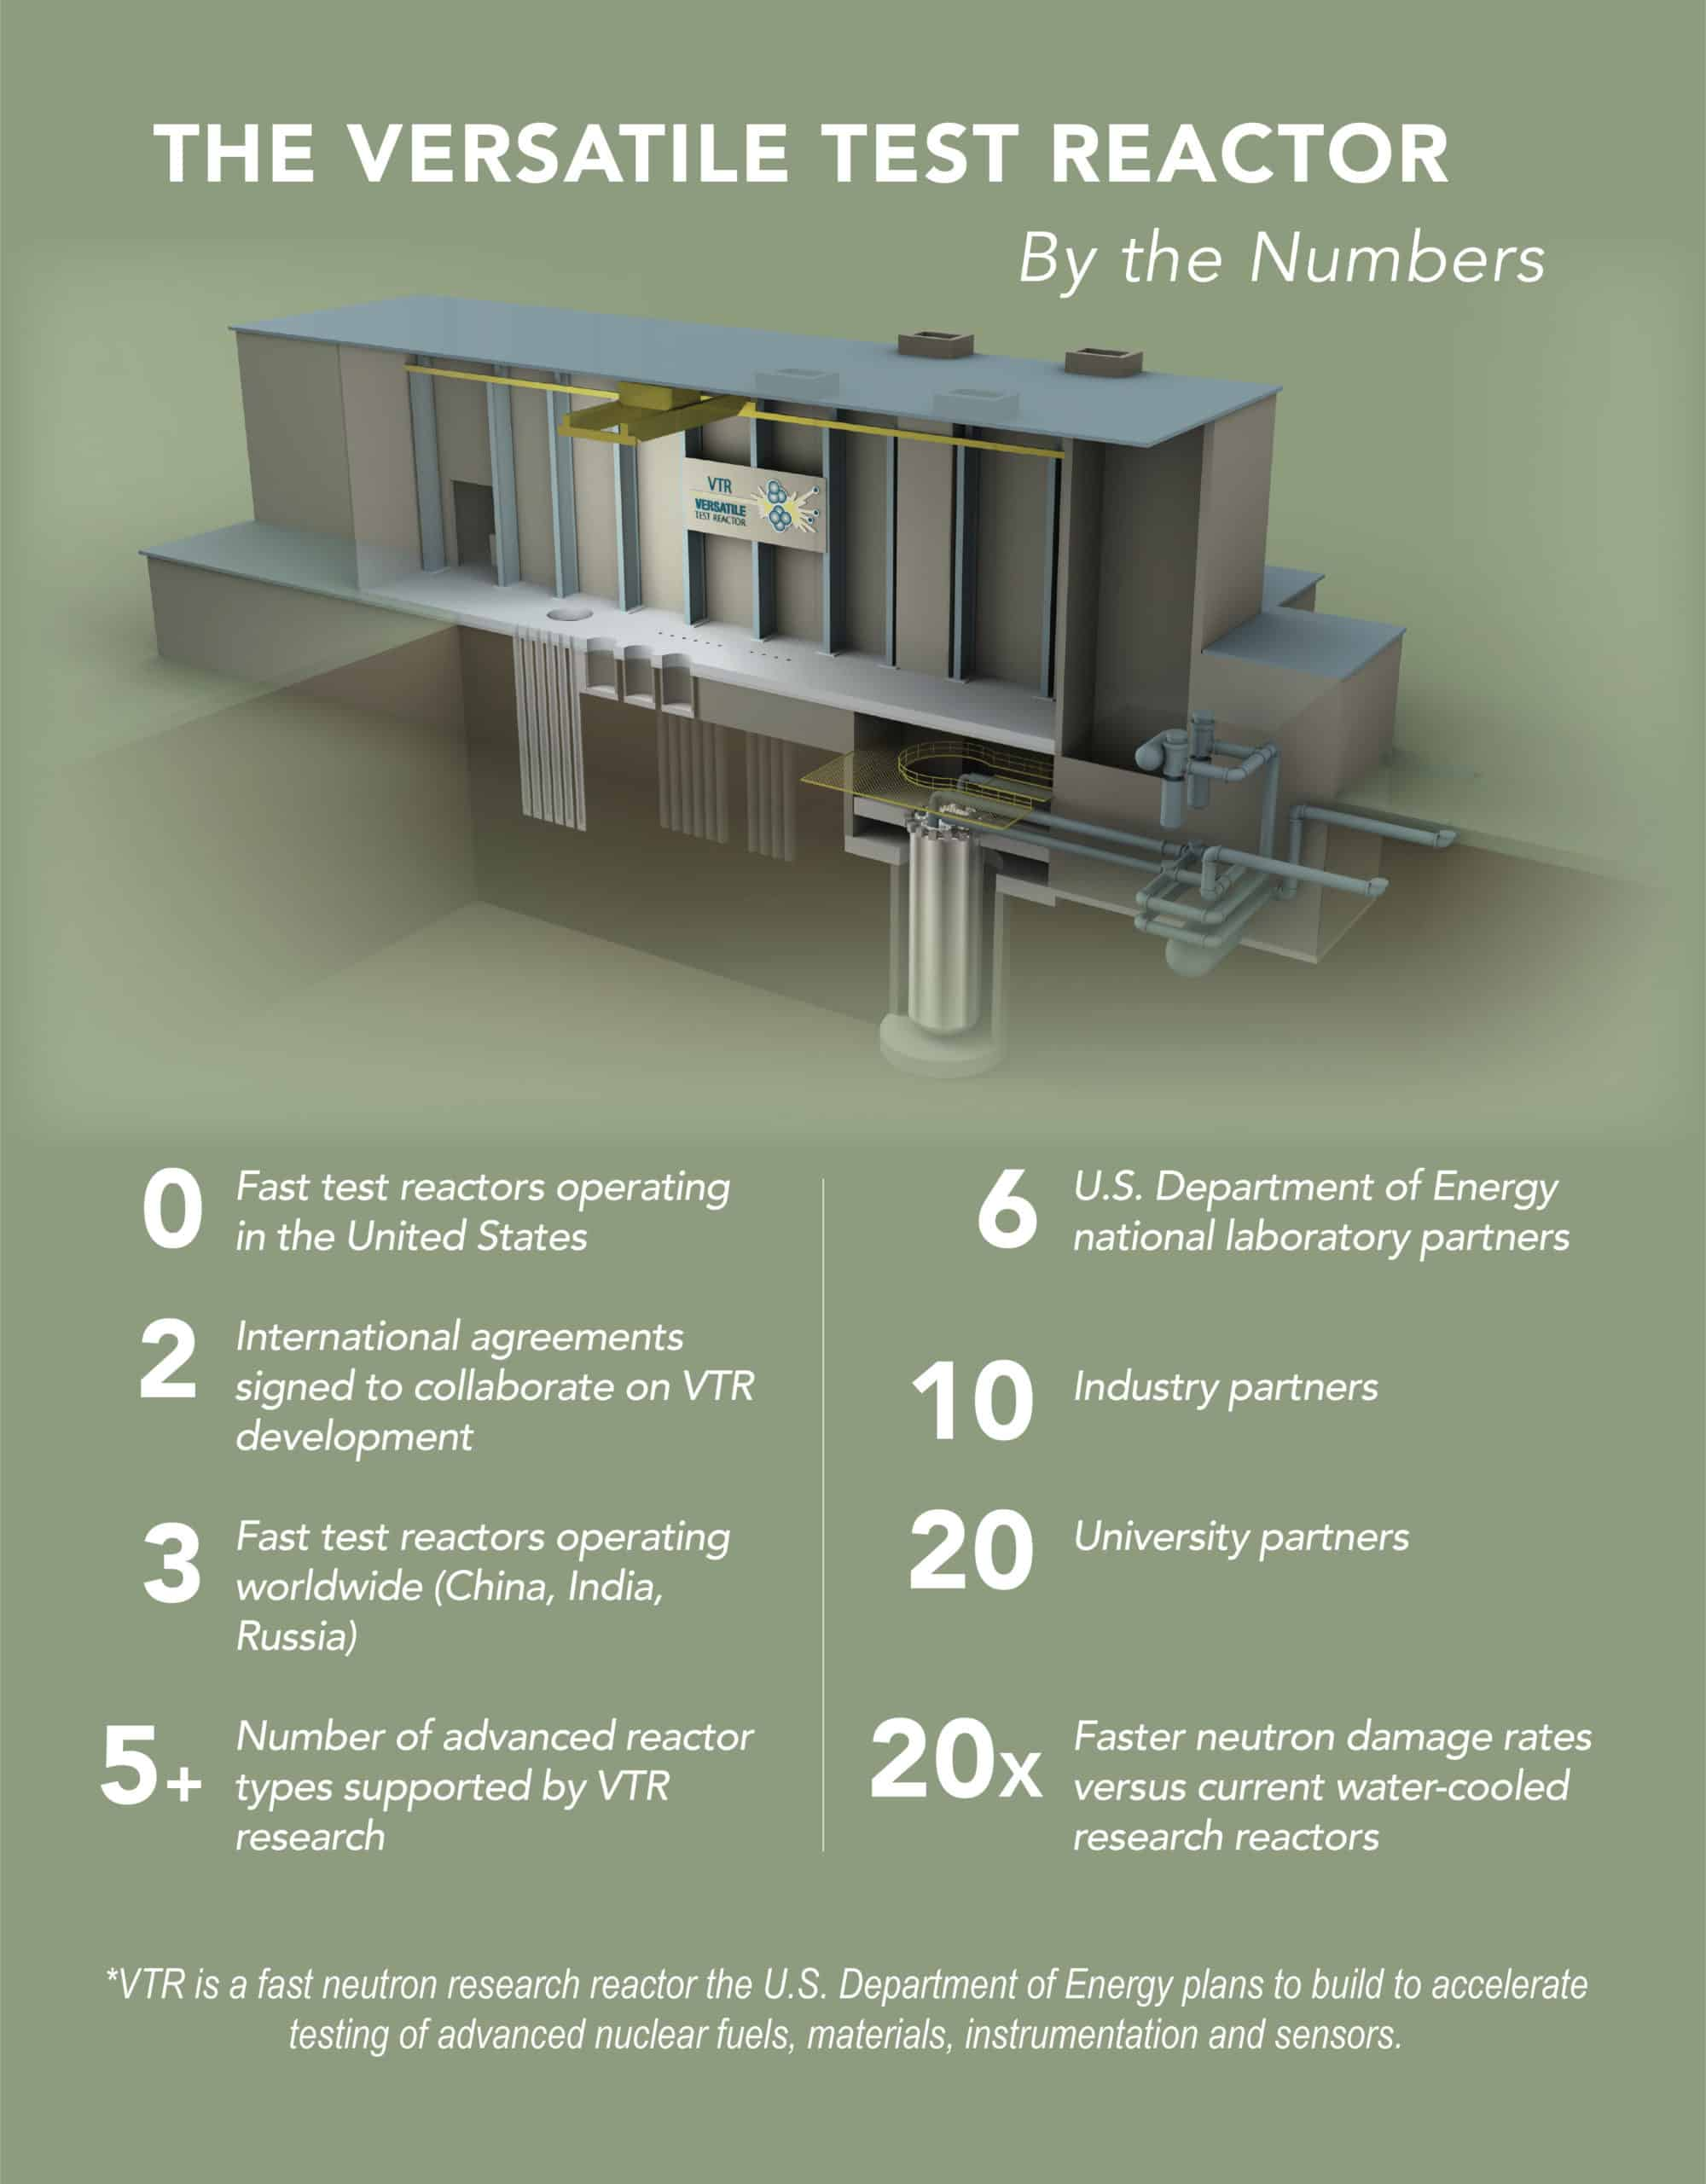 Infographic- The Versatile Test Reactor (VTR) By the Numbers